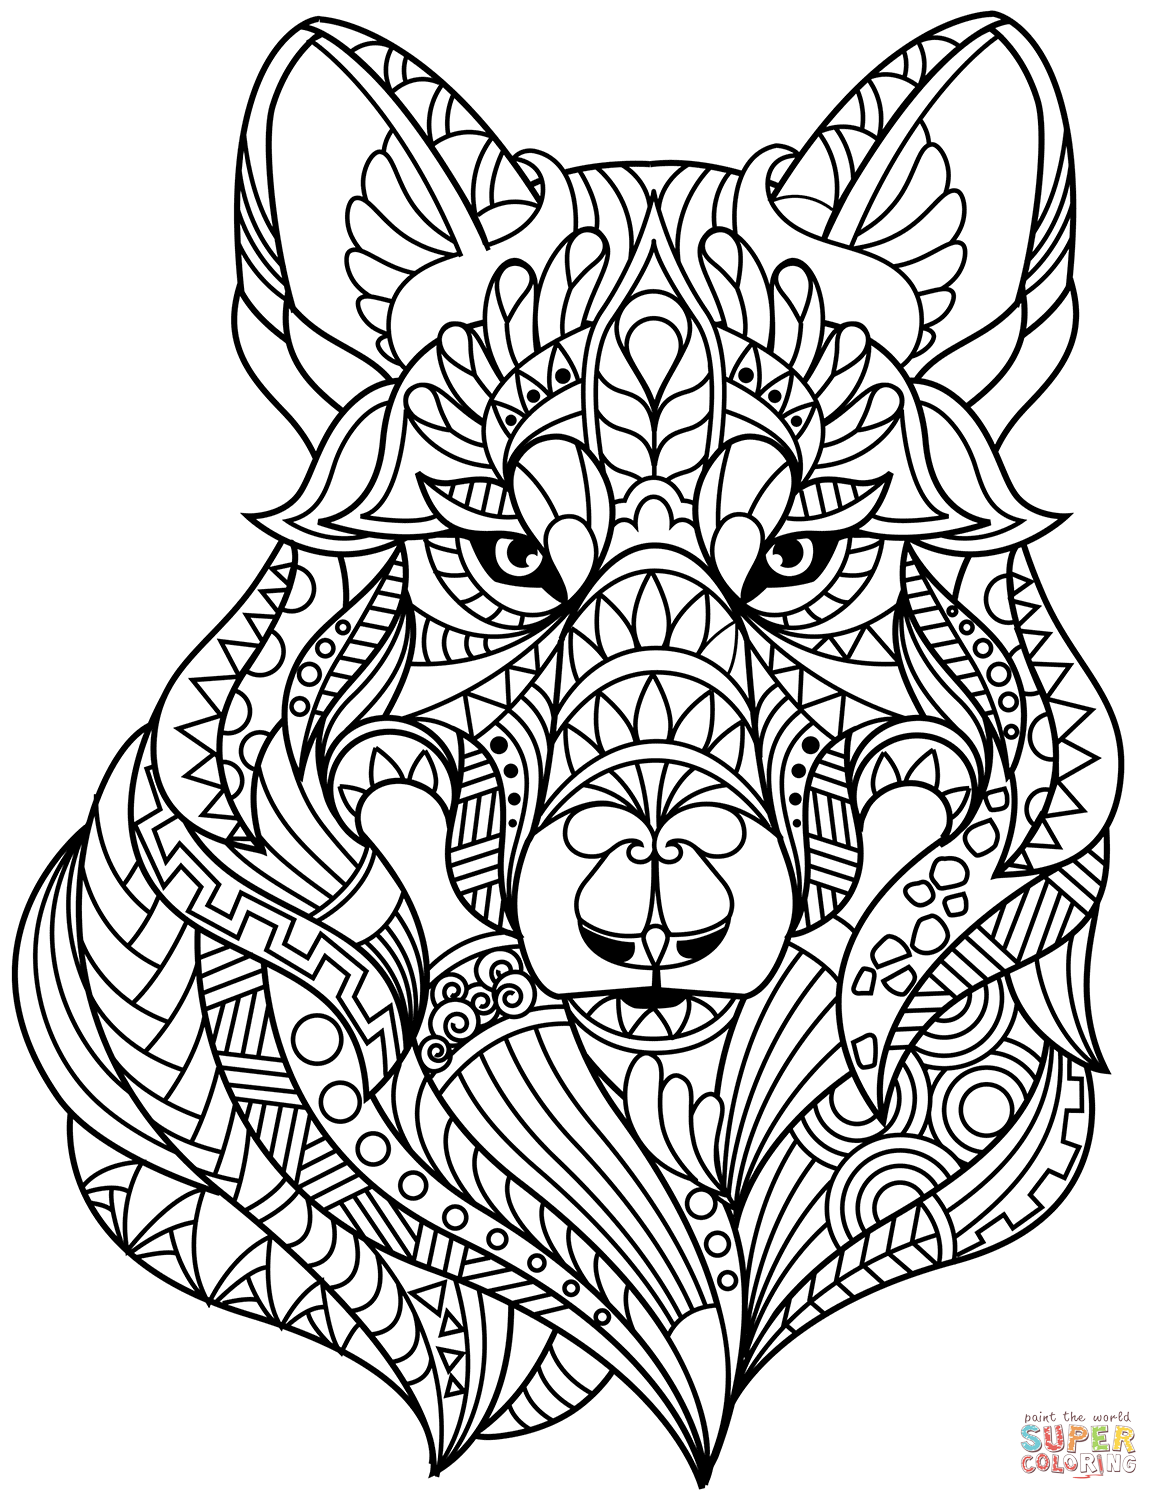 zentangle coloring pages free printable free to download zentangle swan coloring pages coloring free coloring pages zentangle printable